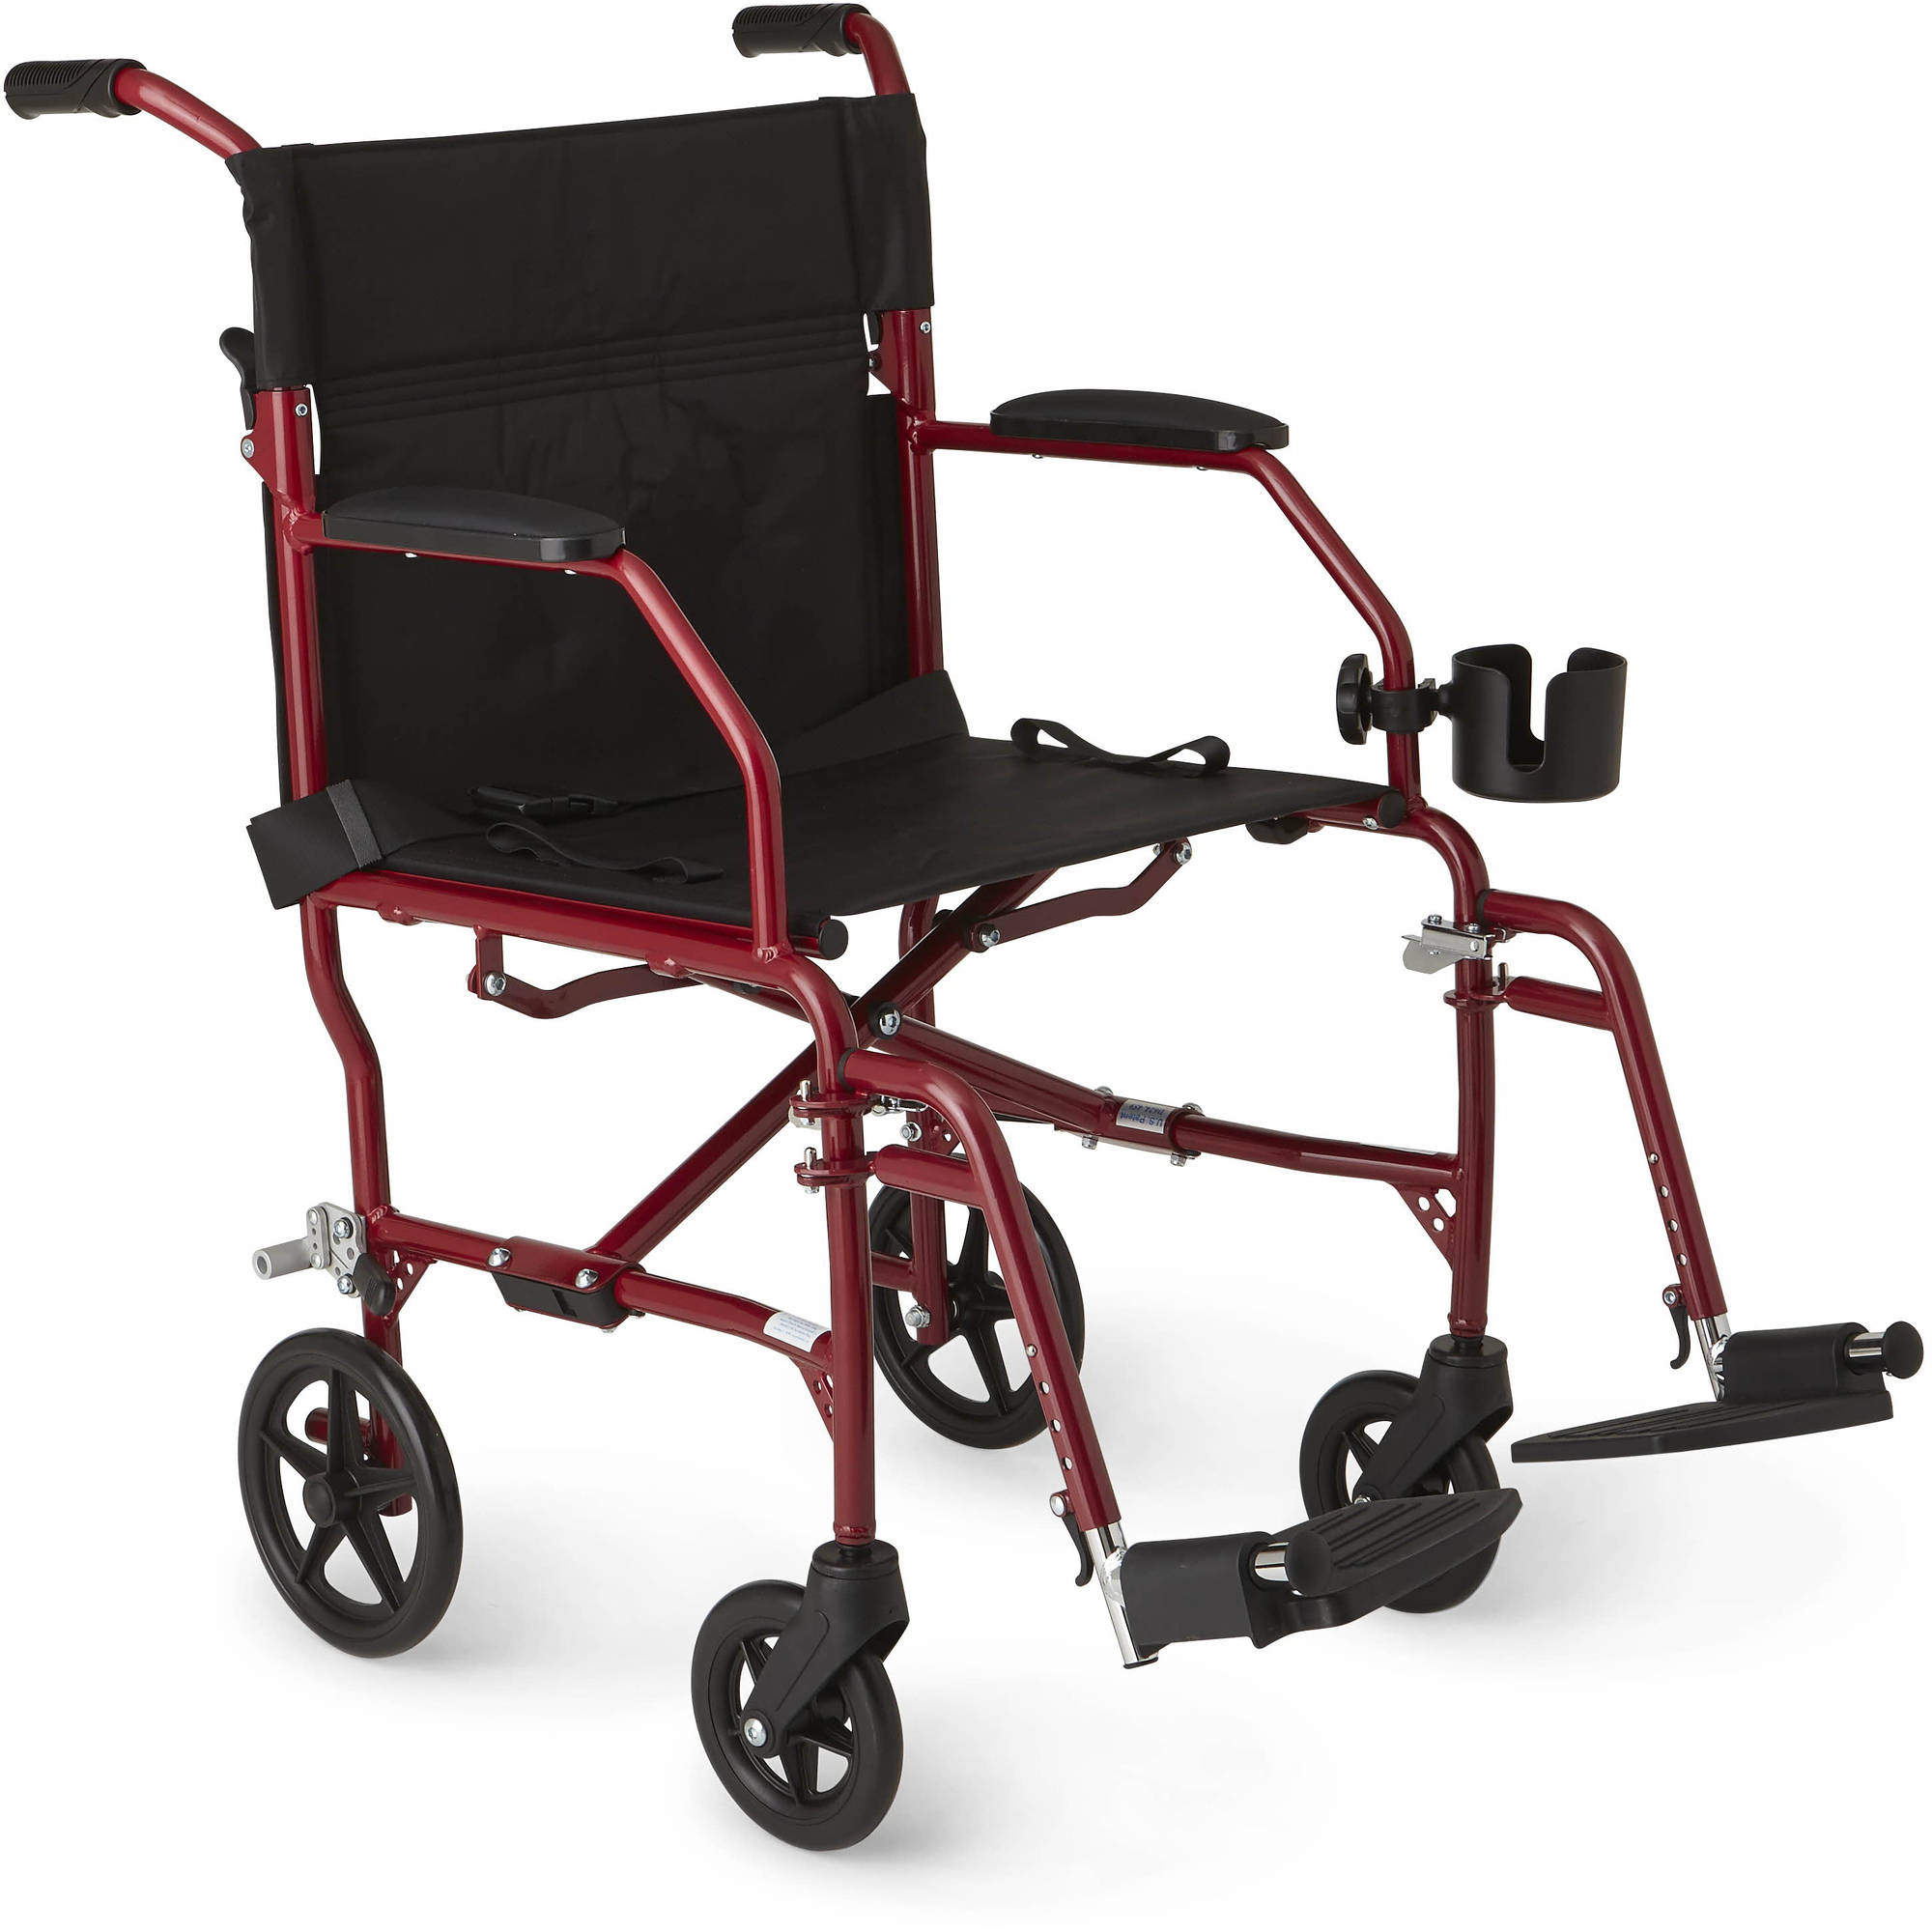 "Medline Ultralight Transport Wheelchair with 19"" x 16"" Seat, Red"